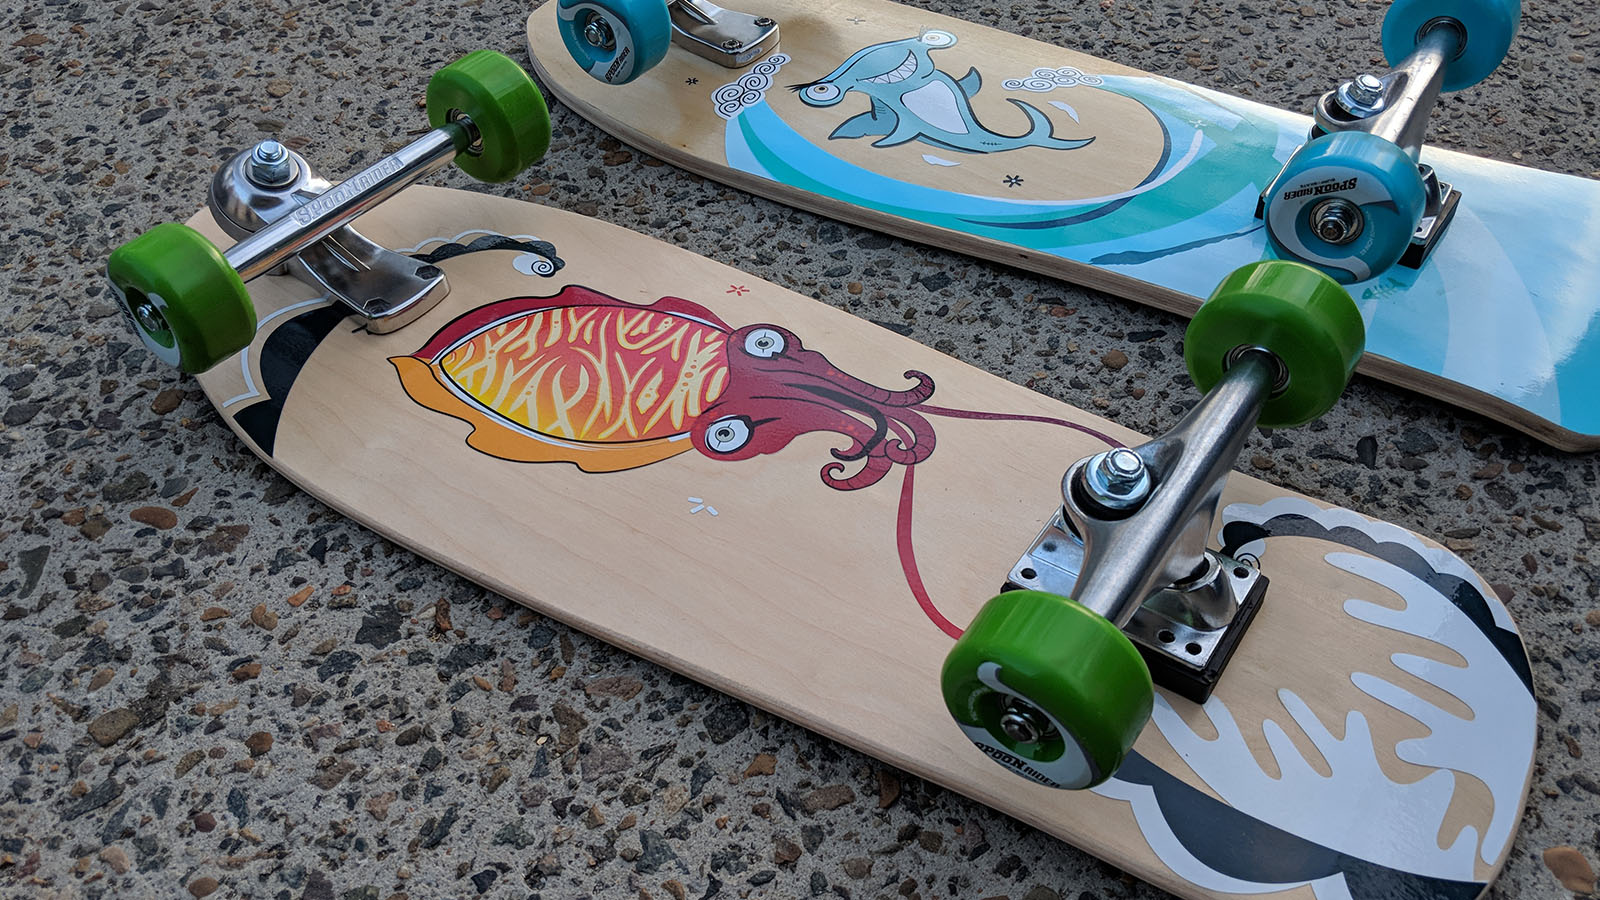 Smooth Star SS20 Surfskate Preview